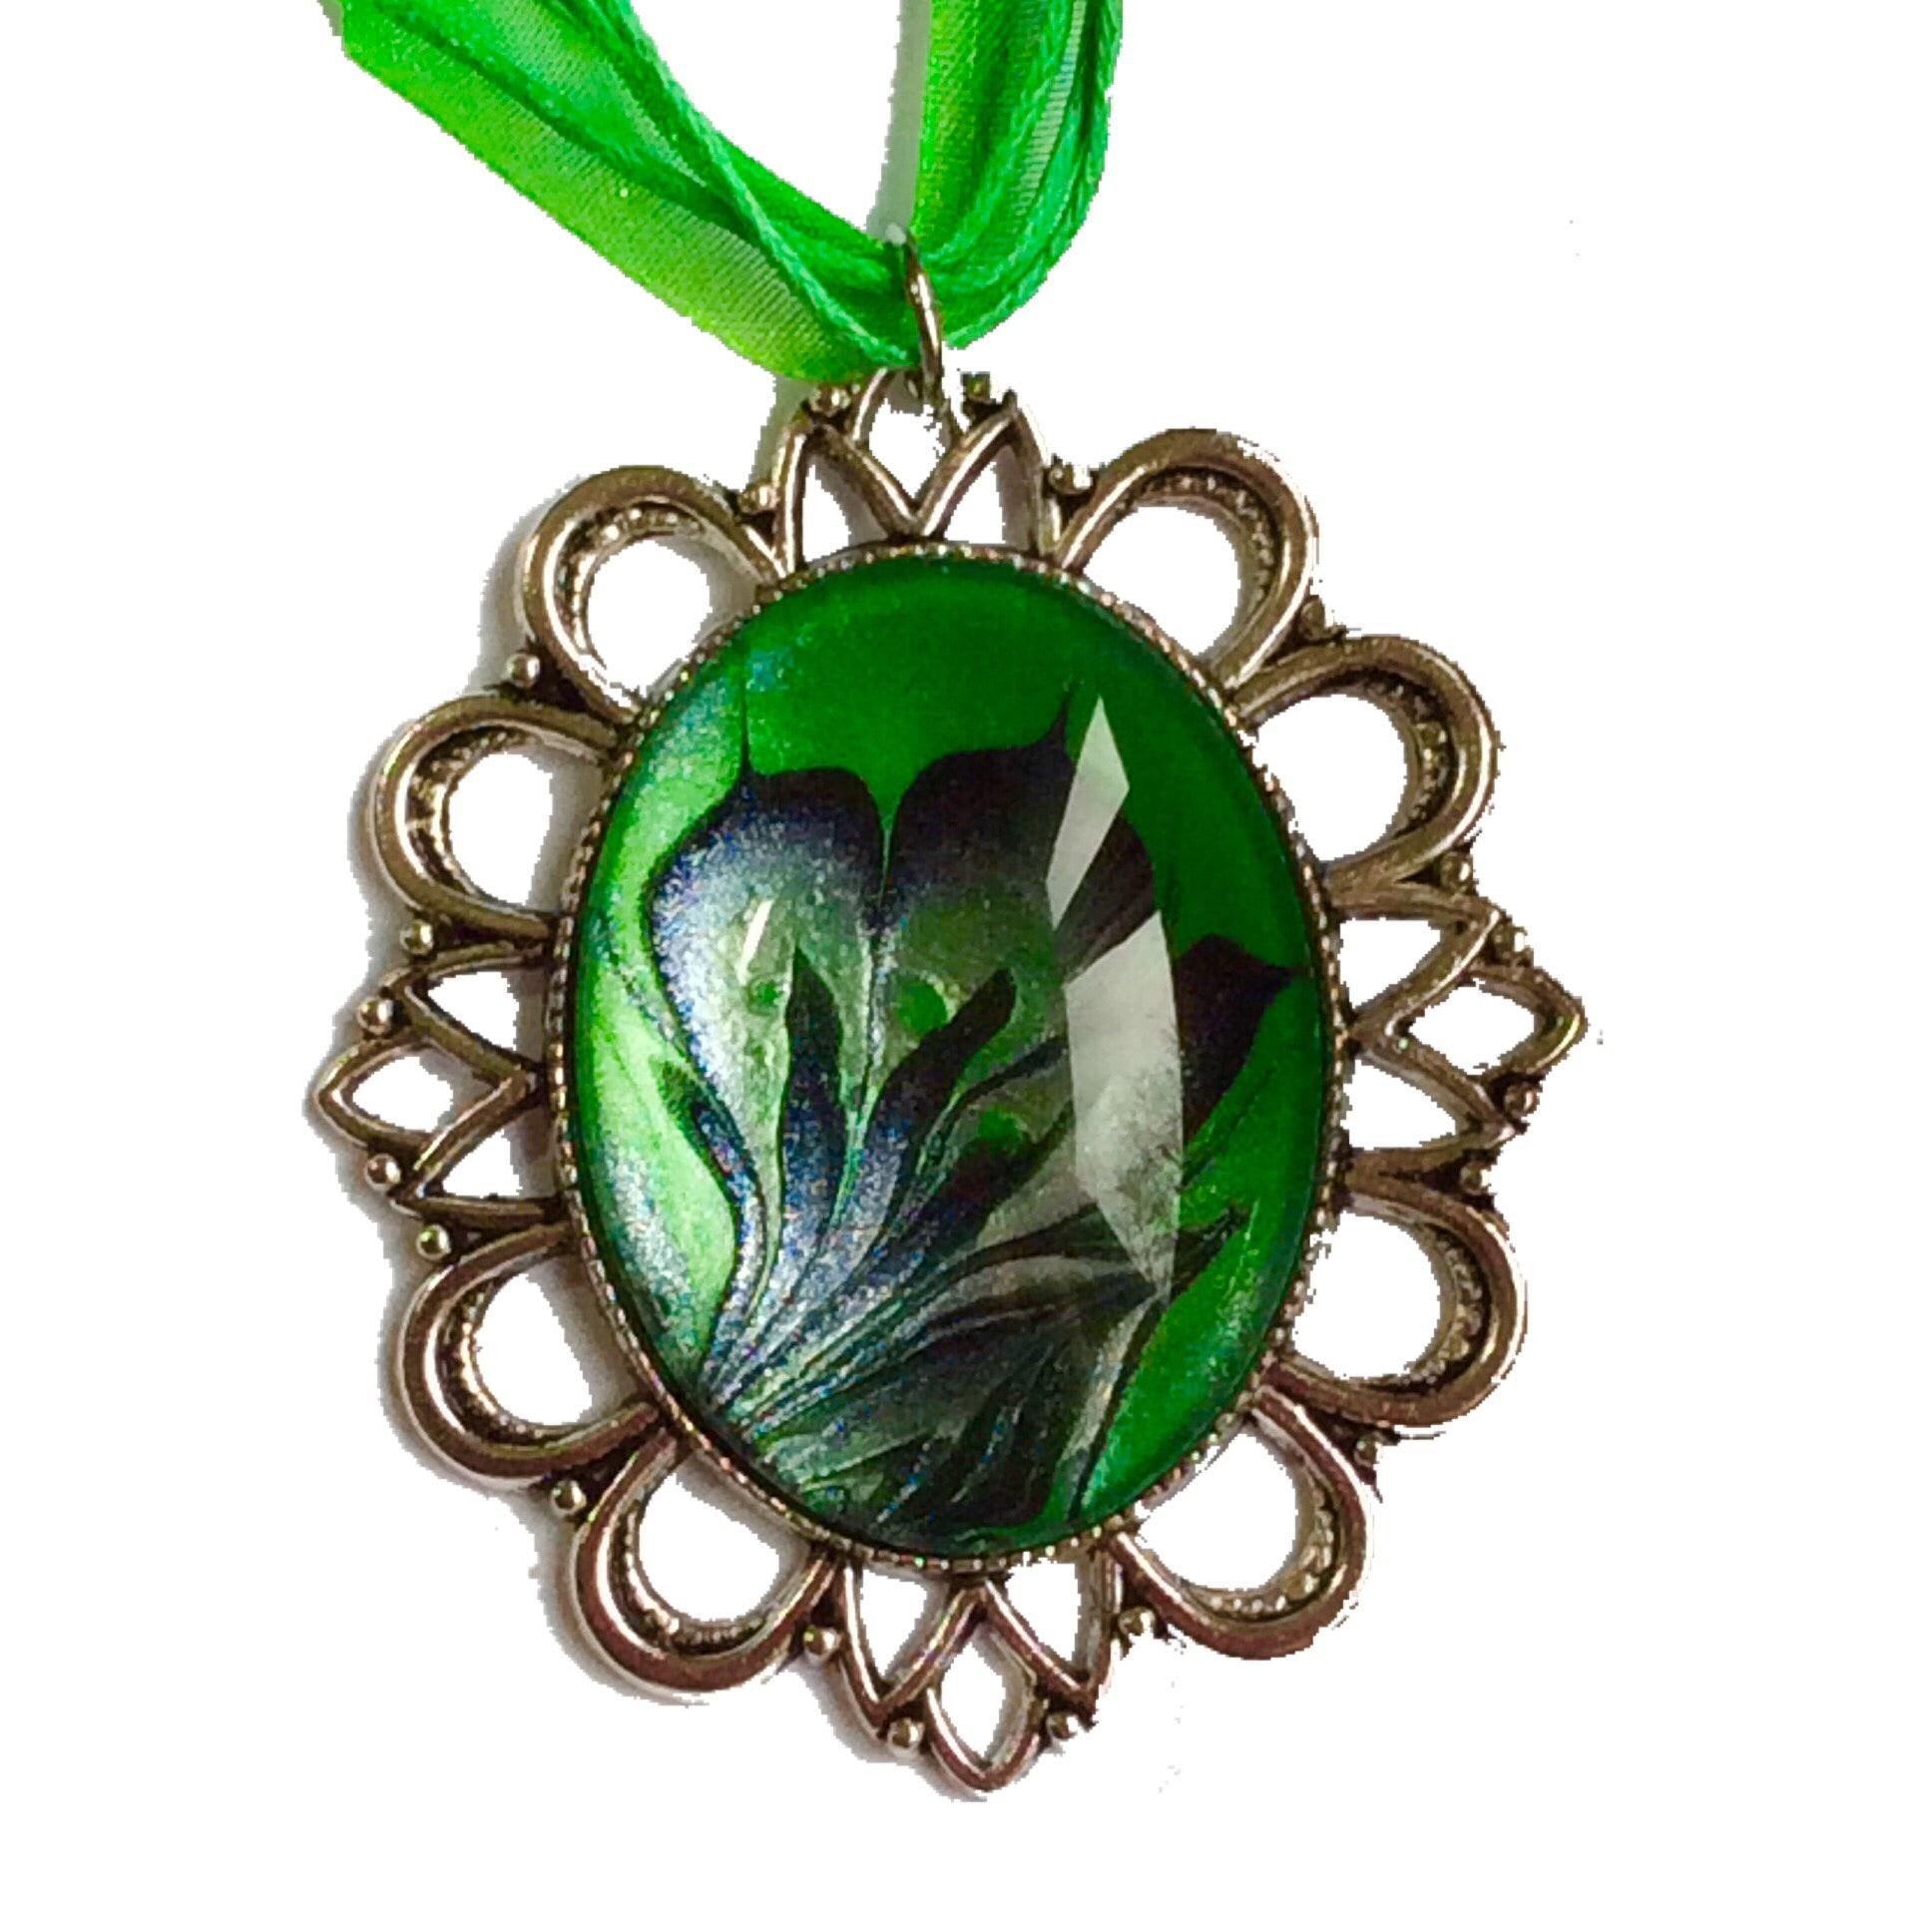 Oval Pendant Necklace, Shades of Green, Black and Antiqued Silver-Jewelry-Fullamoon Designs